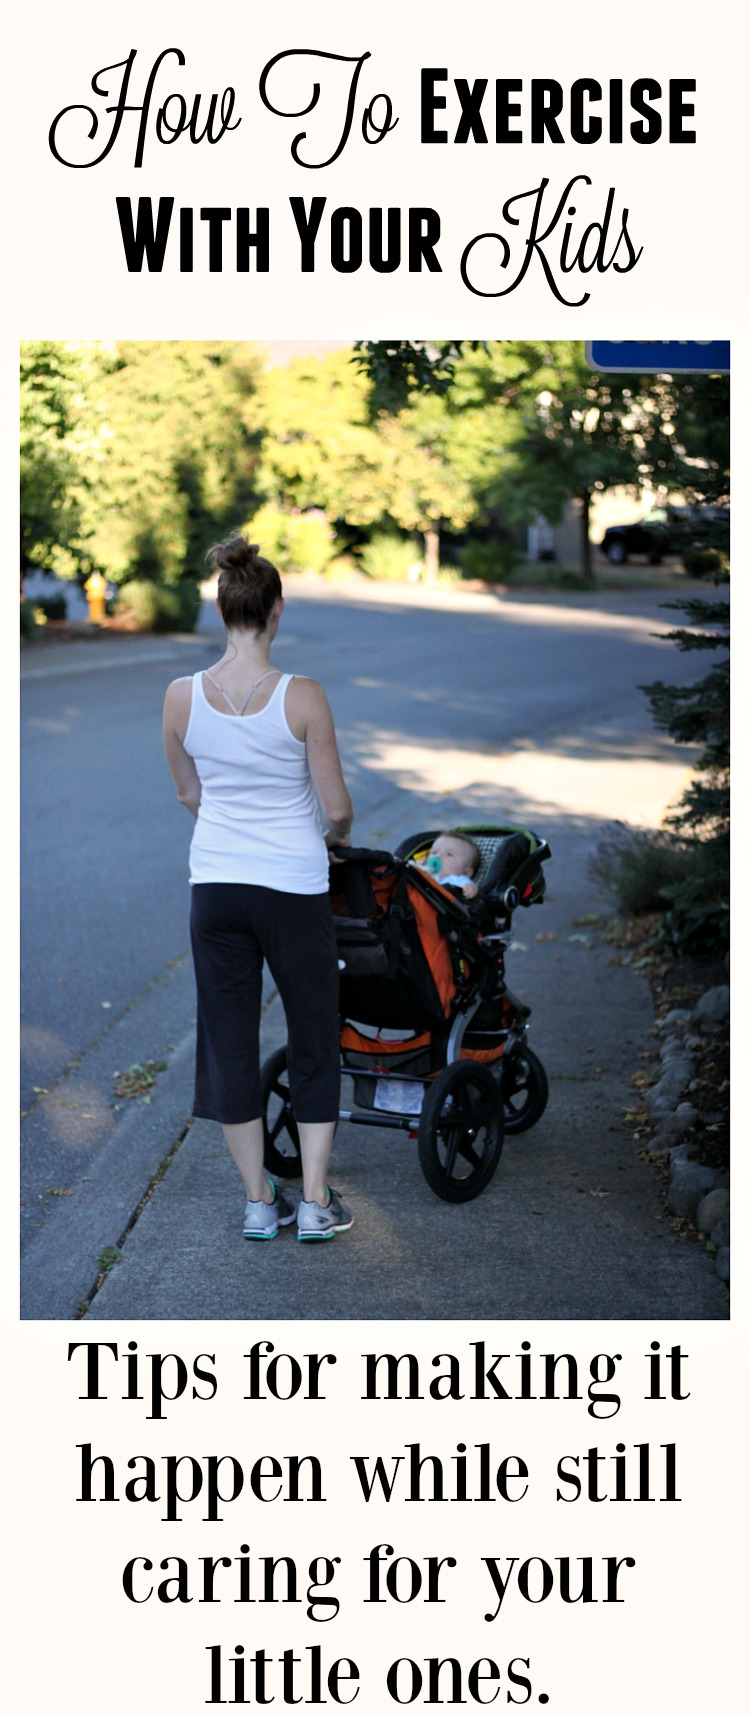 No time for the gym? These tips for how to exercise with your kids in tow make it easy to get your fitness on!